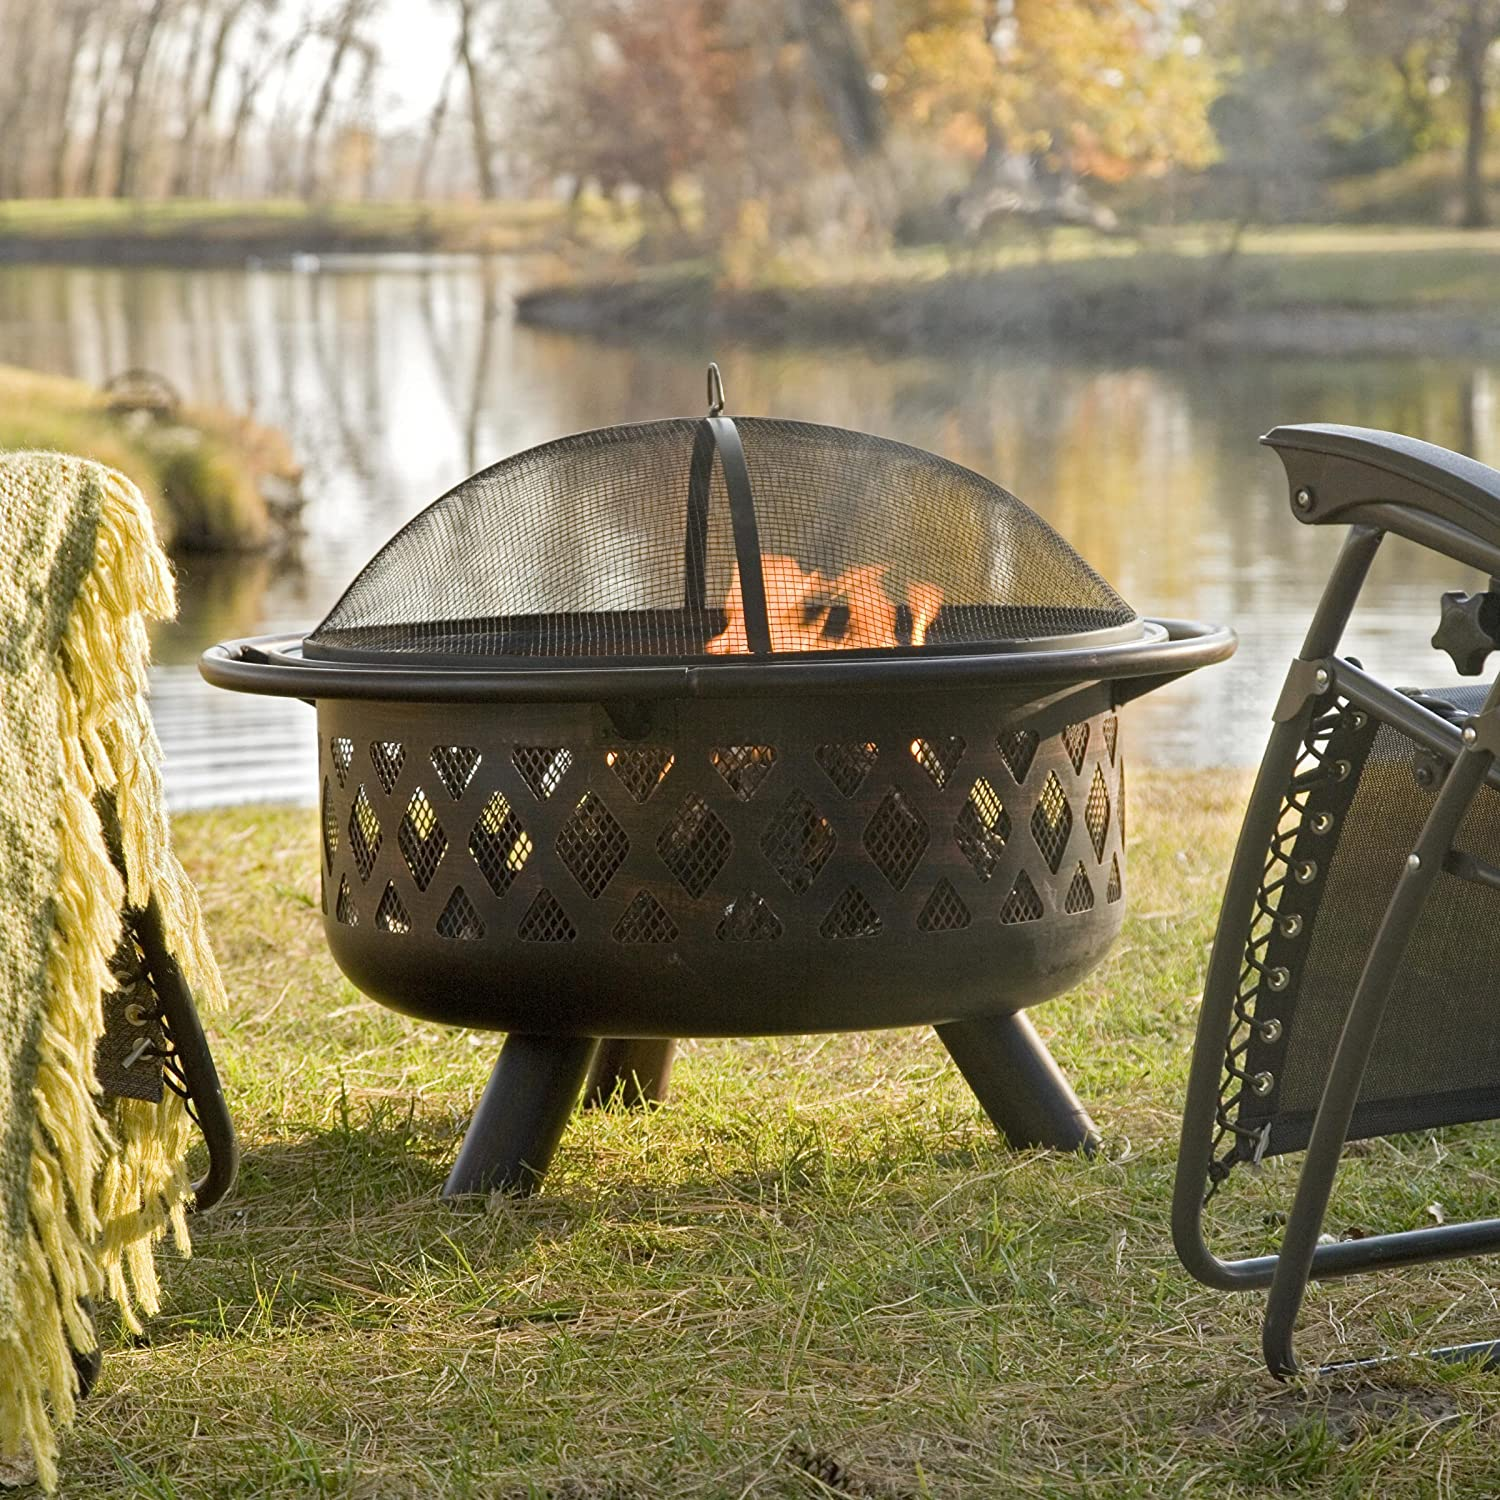 Red Ember Rubbed Bronze Crossweave 36 inch Wood Burning Fire Pit-With Free Grill Grate and Cover, Durable and Perfect for Outdoor Grill